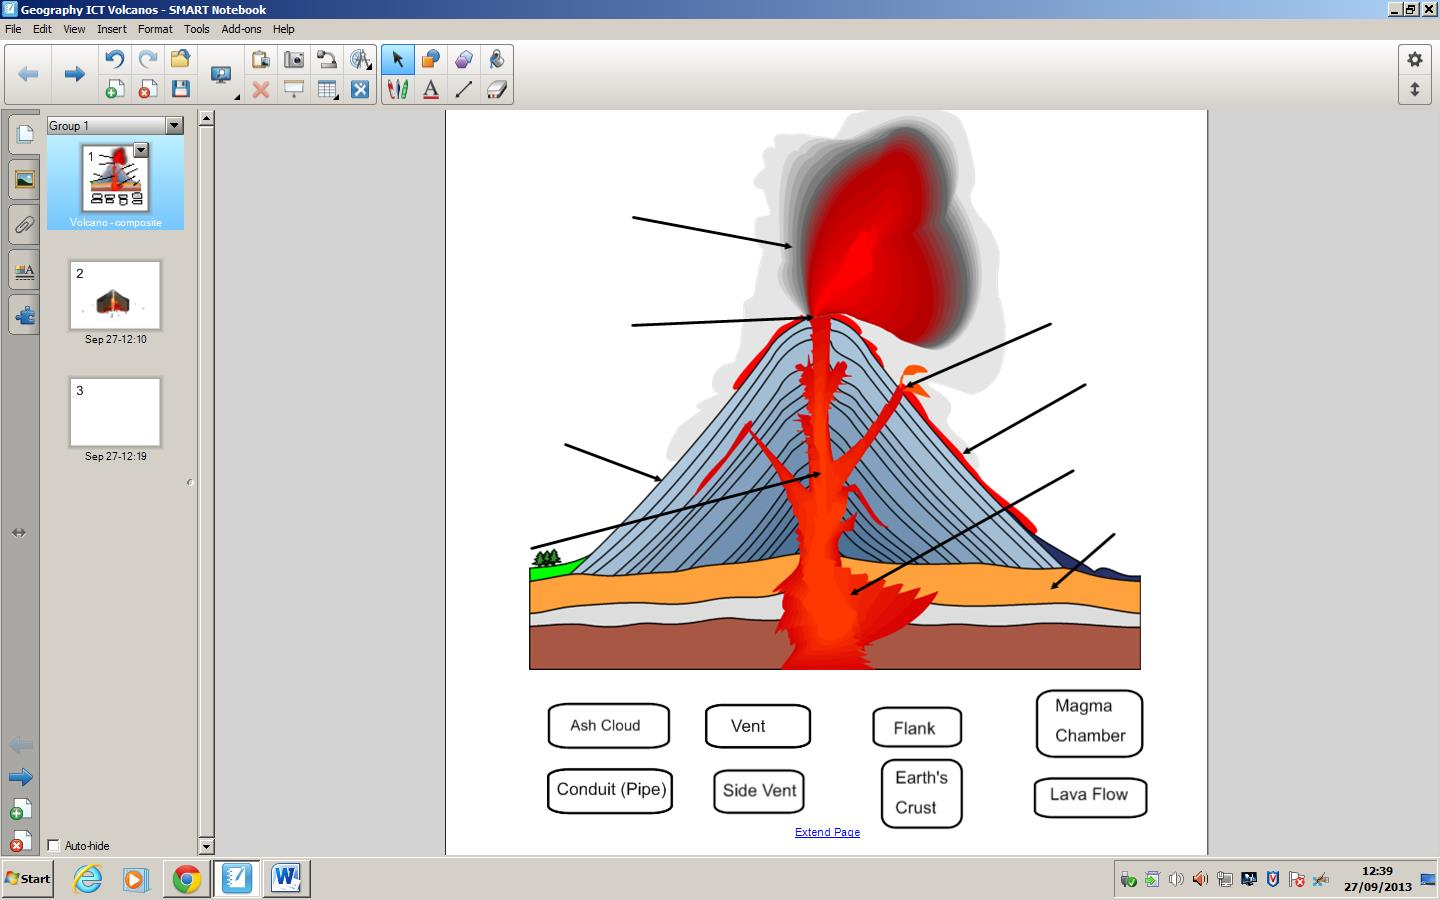 Hd wallpapers volcano diagram ks2 1android33 get free high quality hd wallpapers volcano diagram ks2 ccuart Choice Image